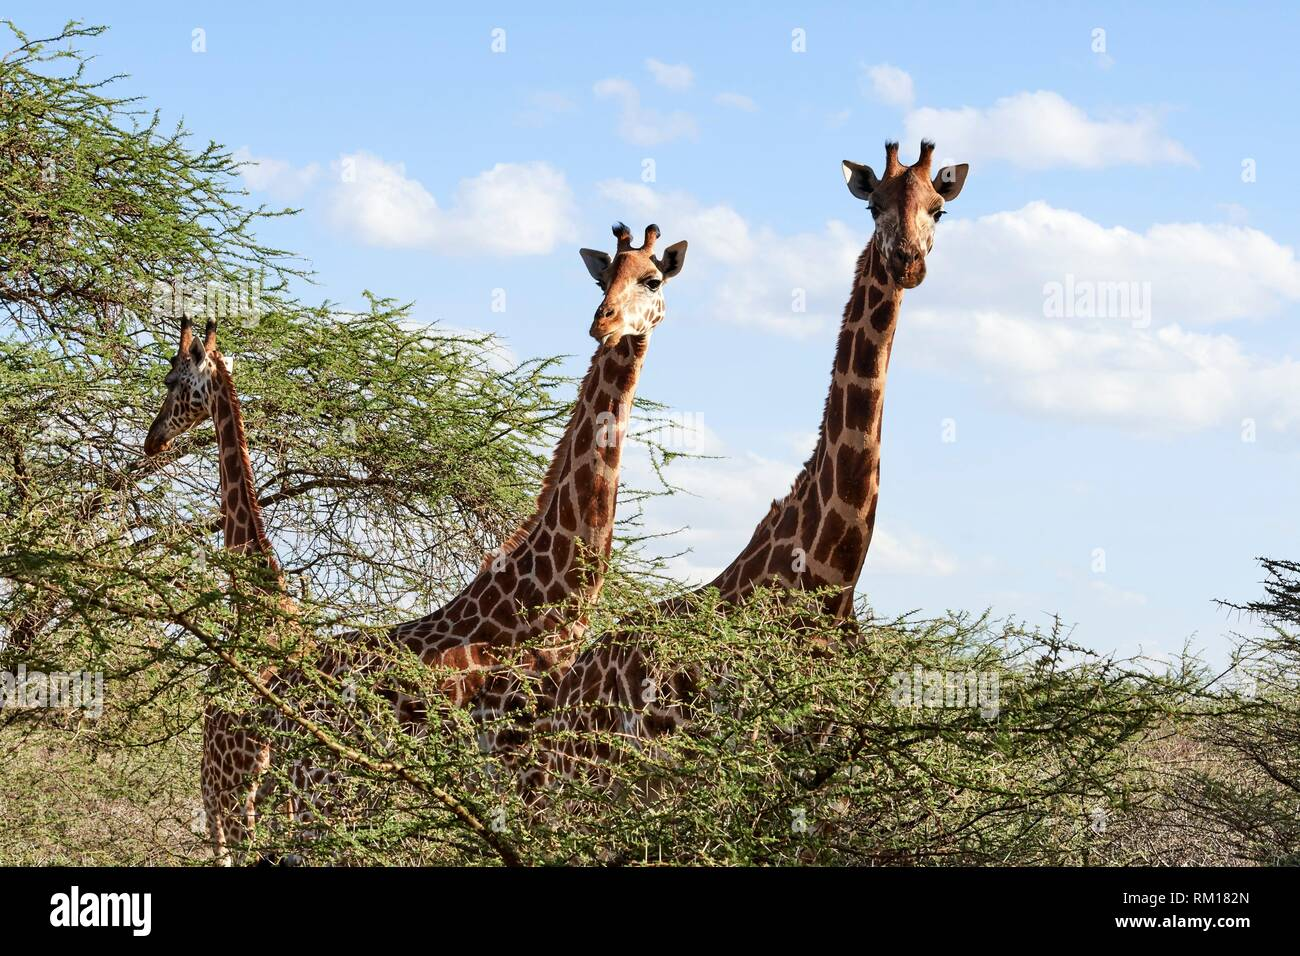 Rothschild giraffe (Giraffa camelopardalis rothschildi) group, head and neck, Ruko Conservancy island, Lake Baringo, Kenya, Africa. - Stock Image